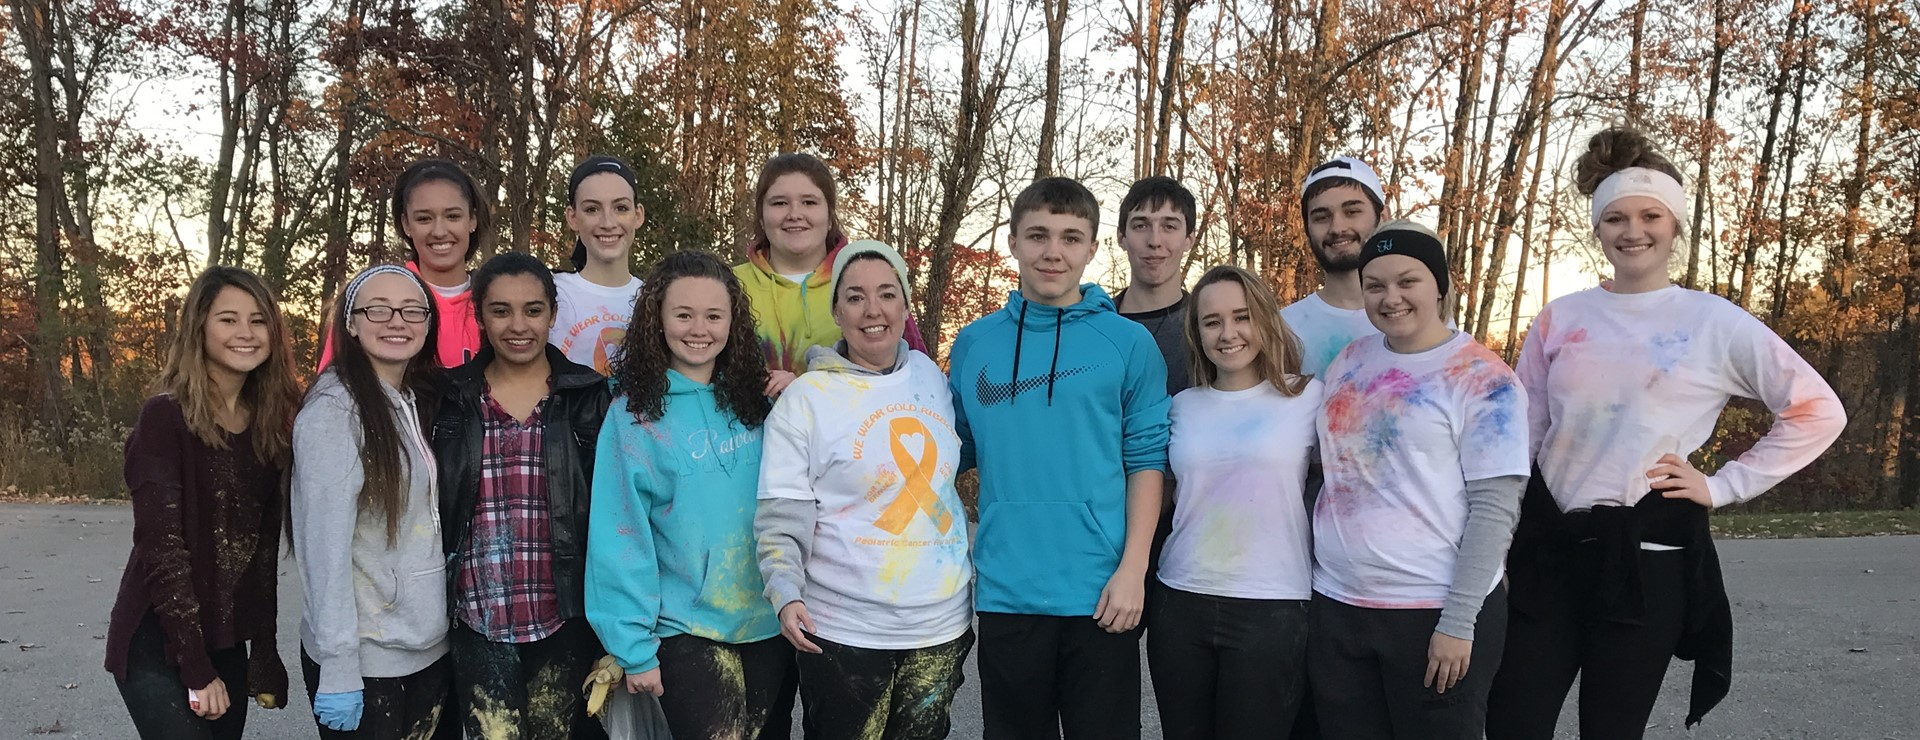 MCHS Wildcat Medical Club 1st Annual J.J.'s 5K